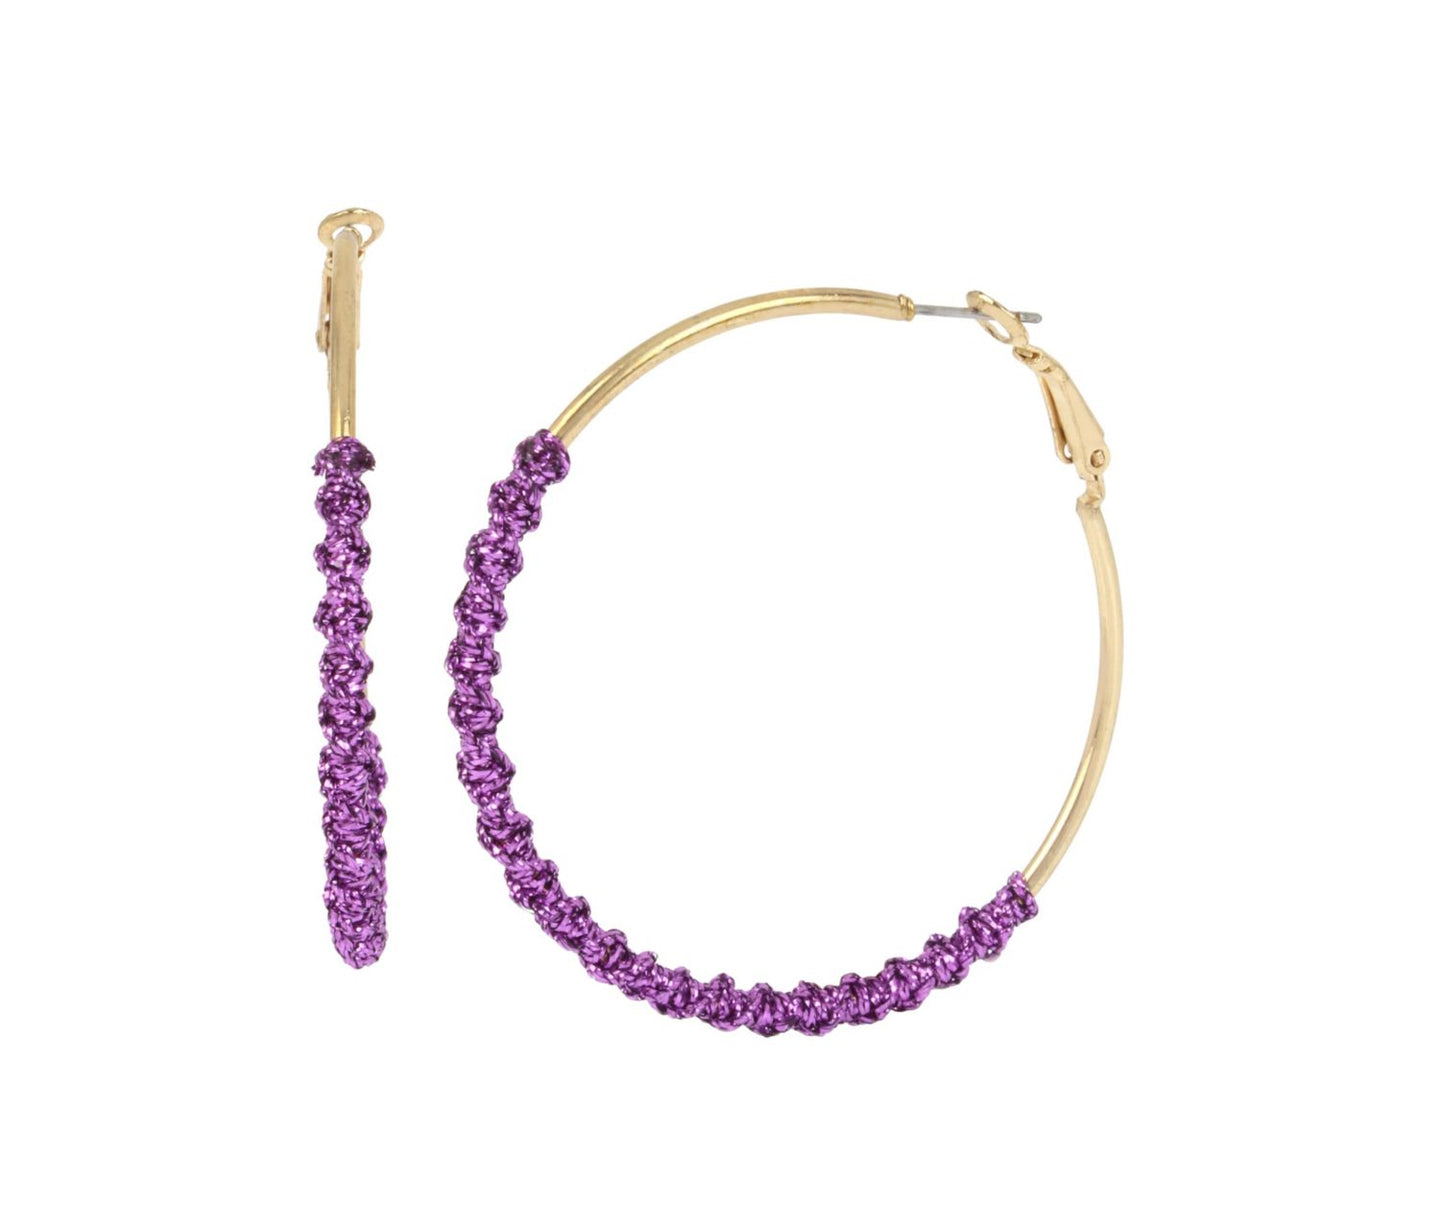 HOOP MAGIC PURPLE TWIST EARRINGS PURPLE - JEWELRY - Betsey Johnson